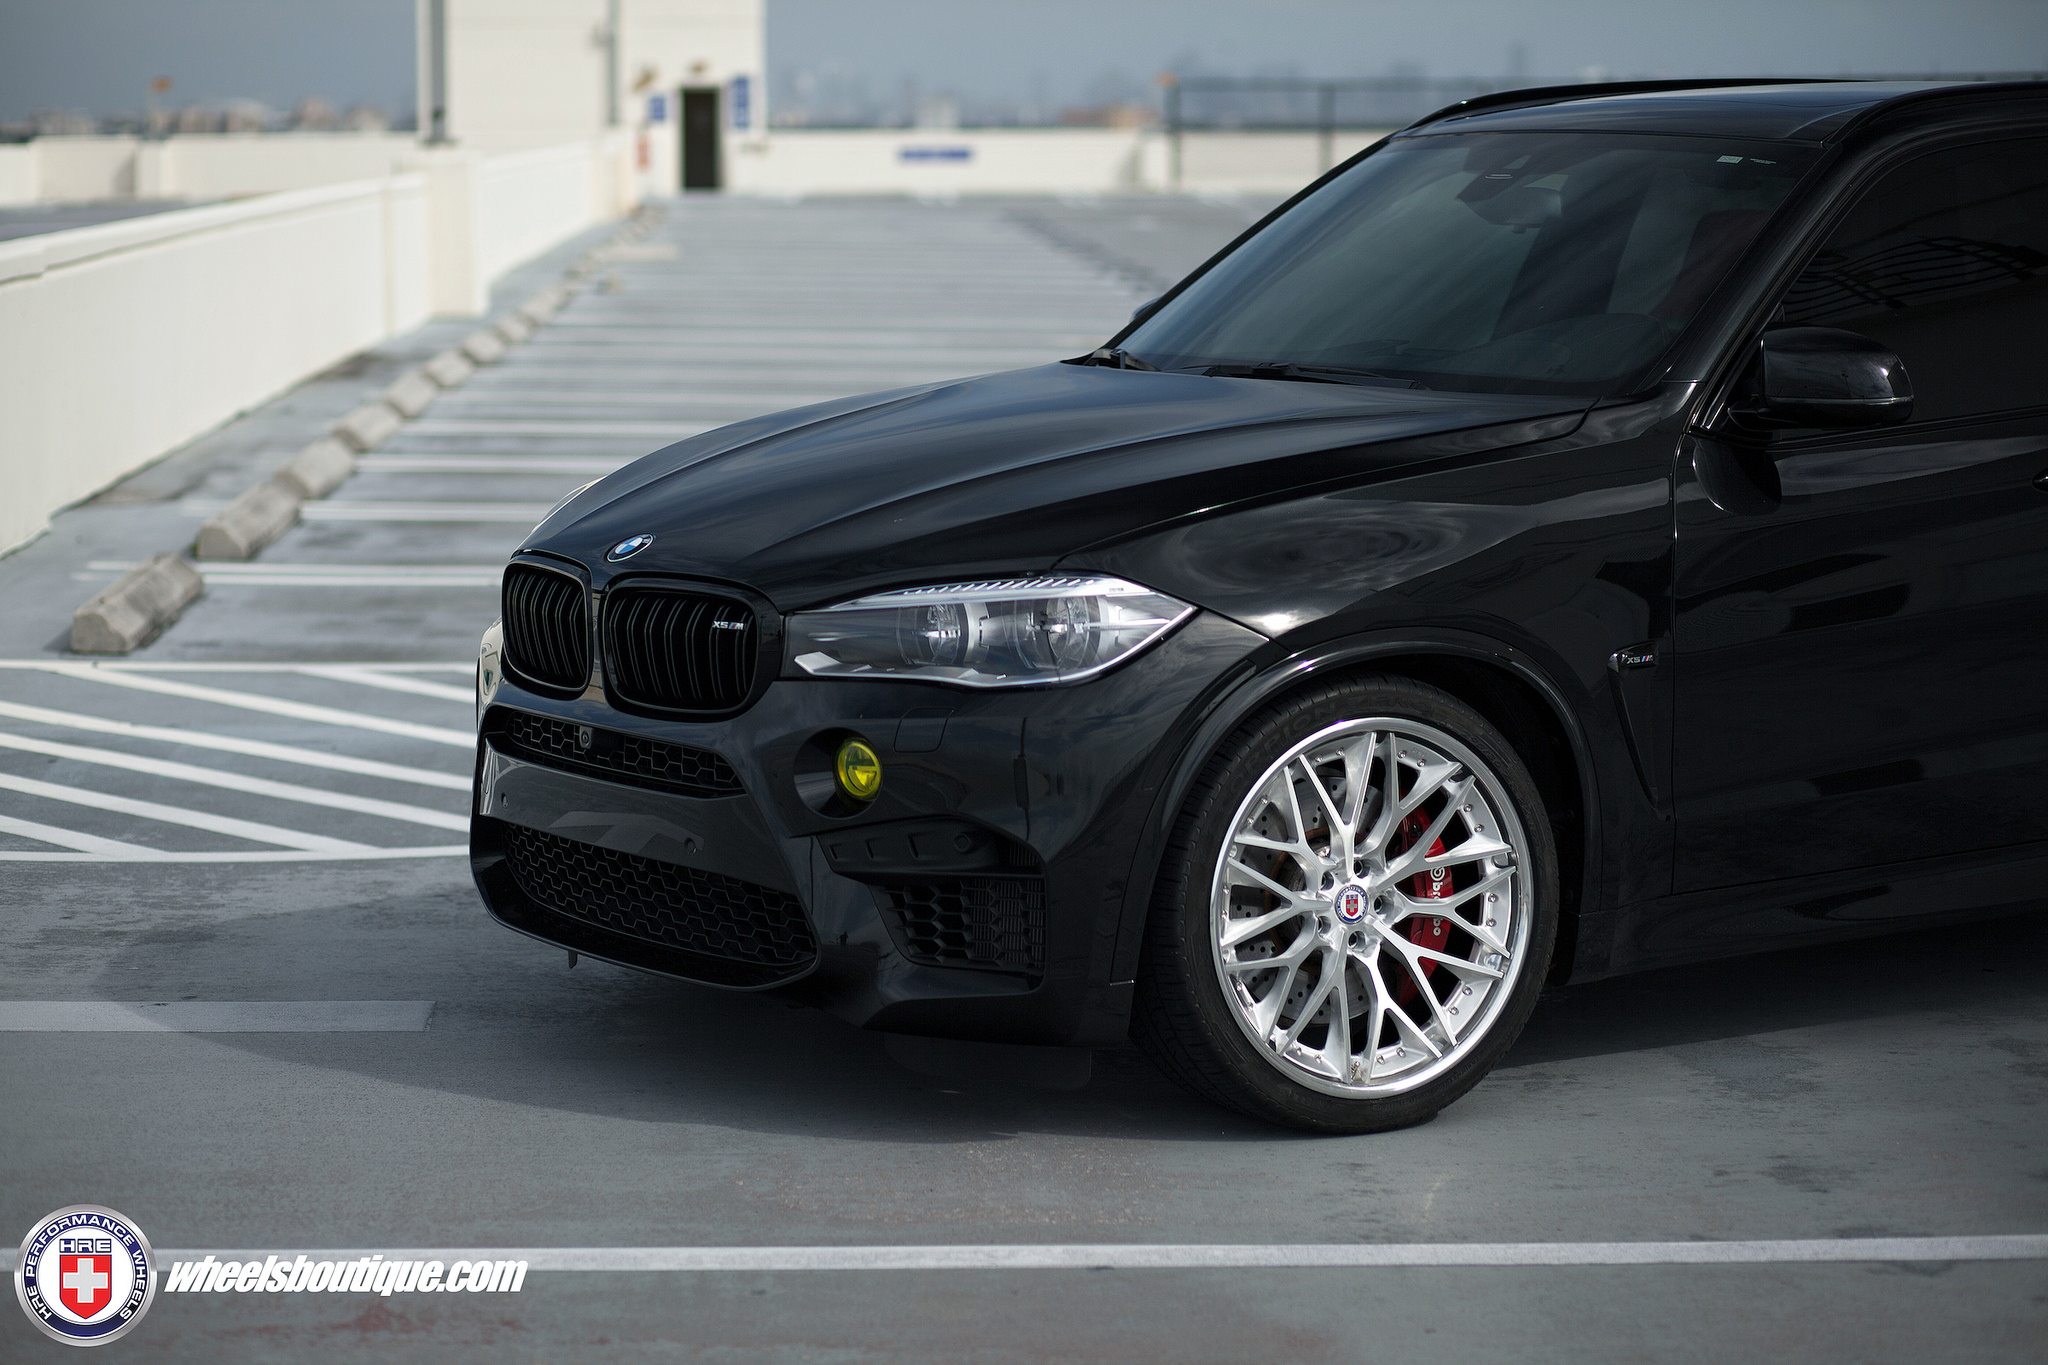 BMW X5 M by Wheels Boutique (6)